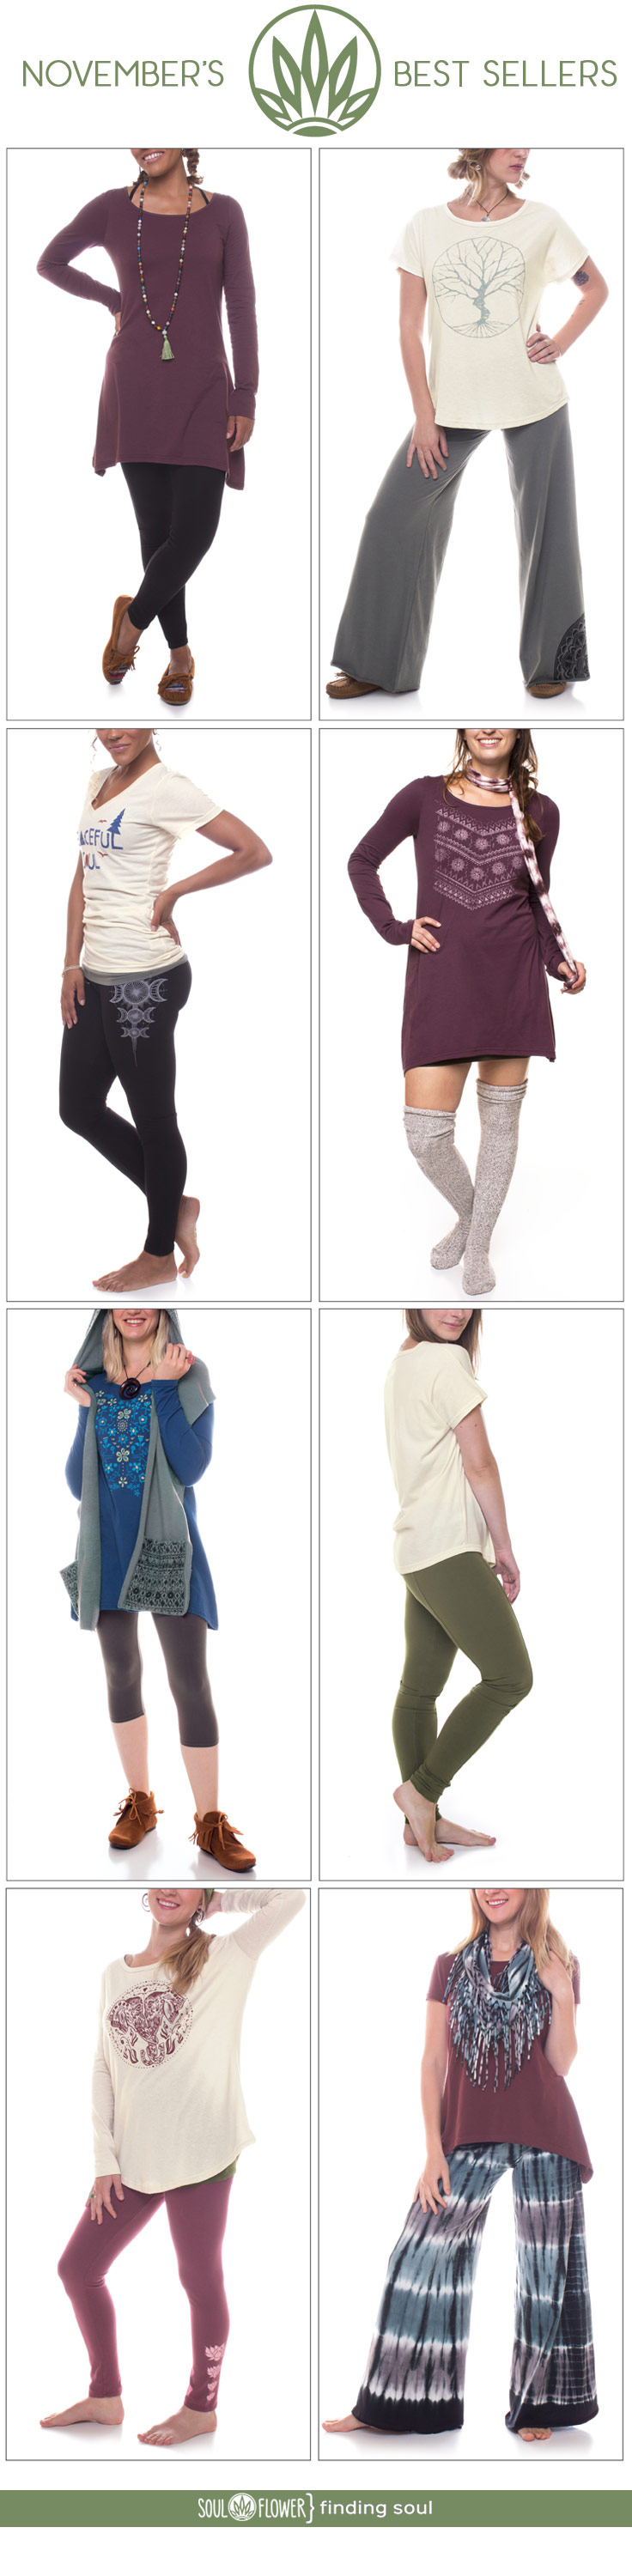 November Best Sellers | Soul Flower Blog | Soulflower | Eco-Friendly Clothing | Organic | Fall | Autumn | Hippie